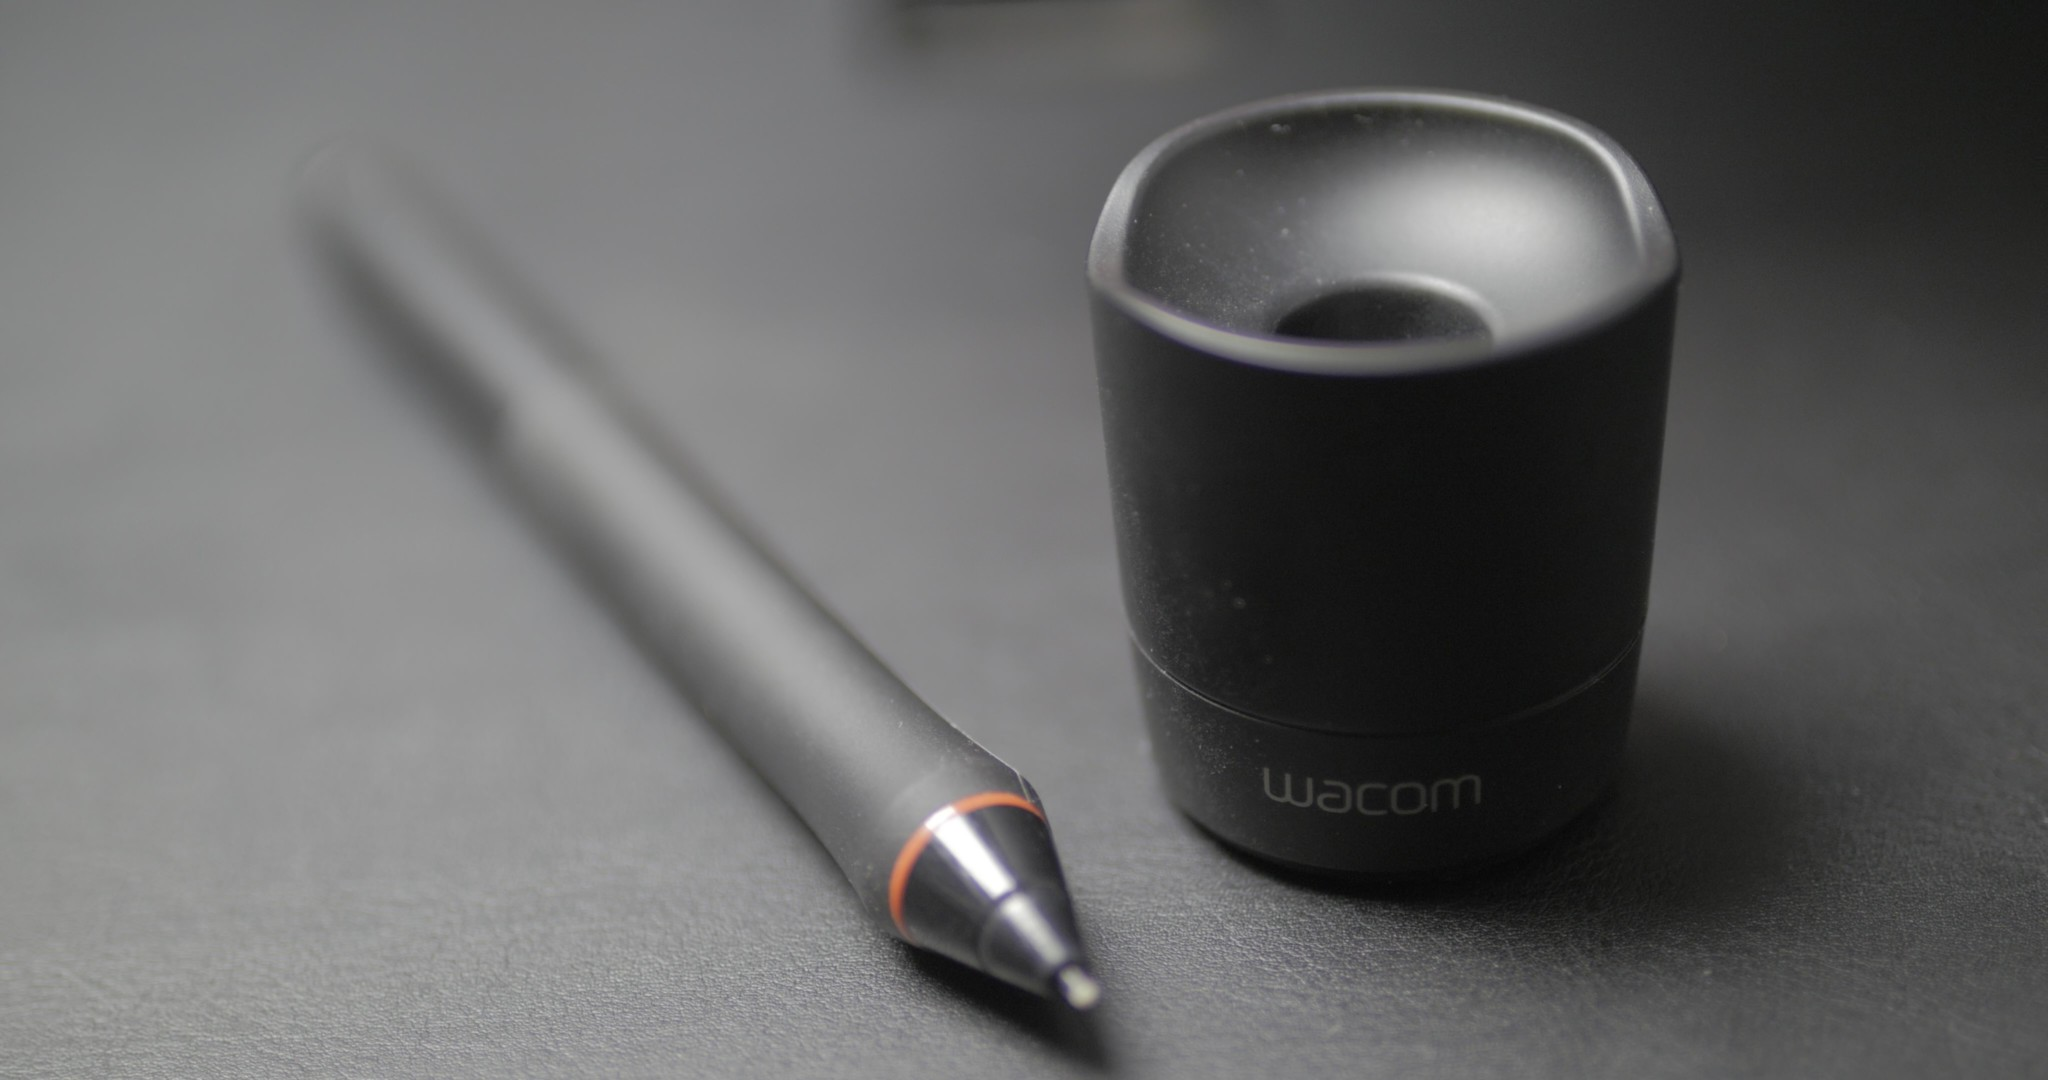 Boutique Retouching wacom-tablet-closeup-b-roll-5_Moment Fix WACOM Pen Lag On Windows - Ultimate Brush Performance